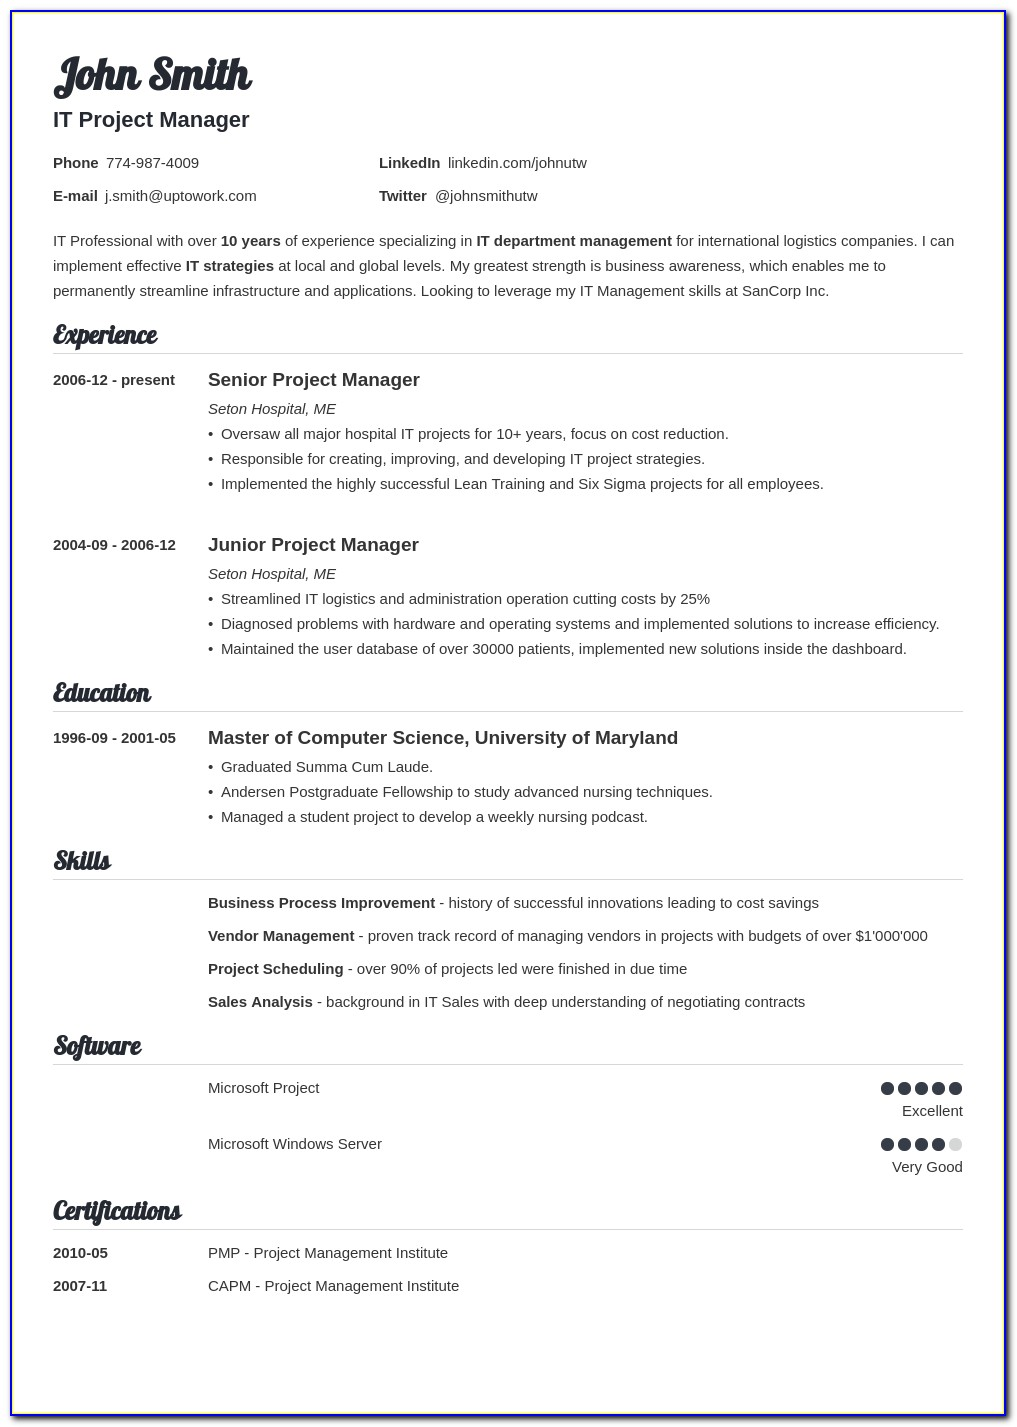 Example Of A Resume Outline